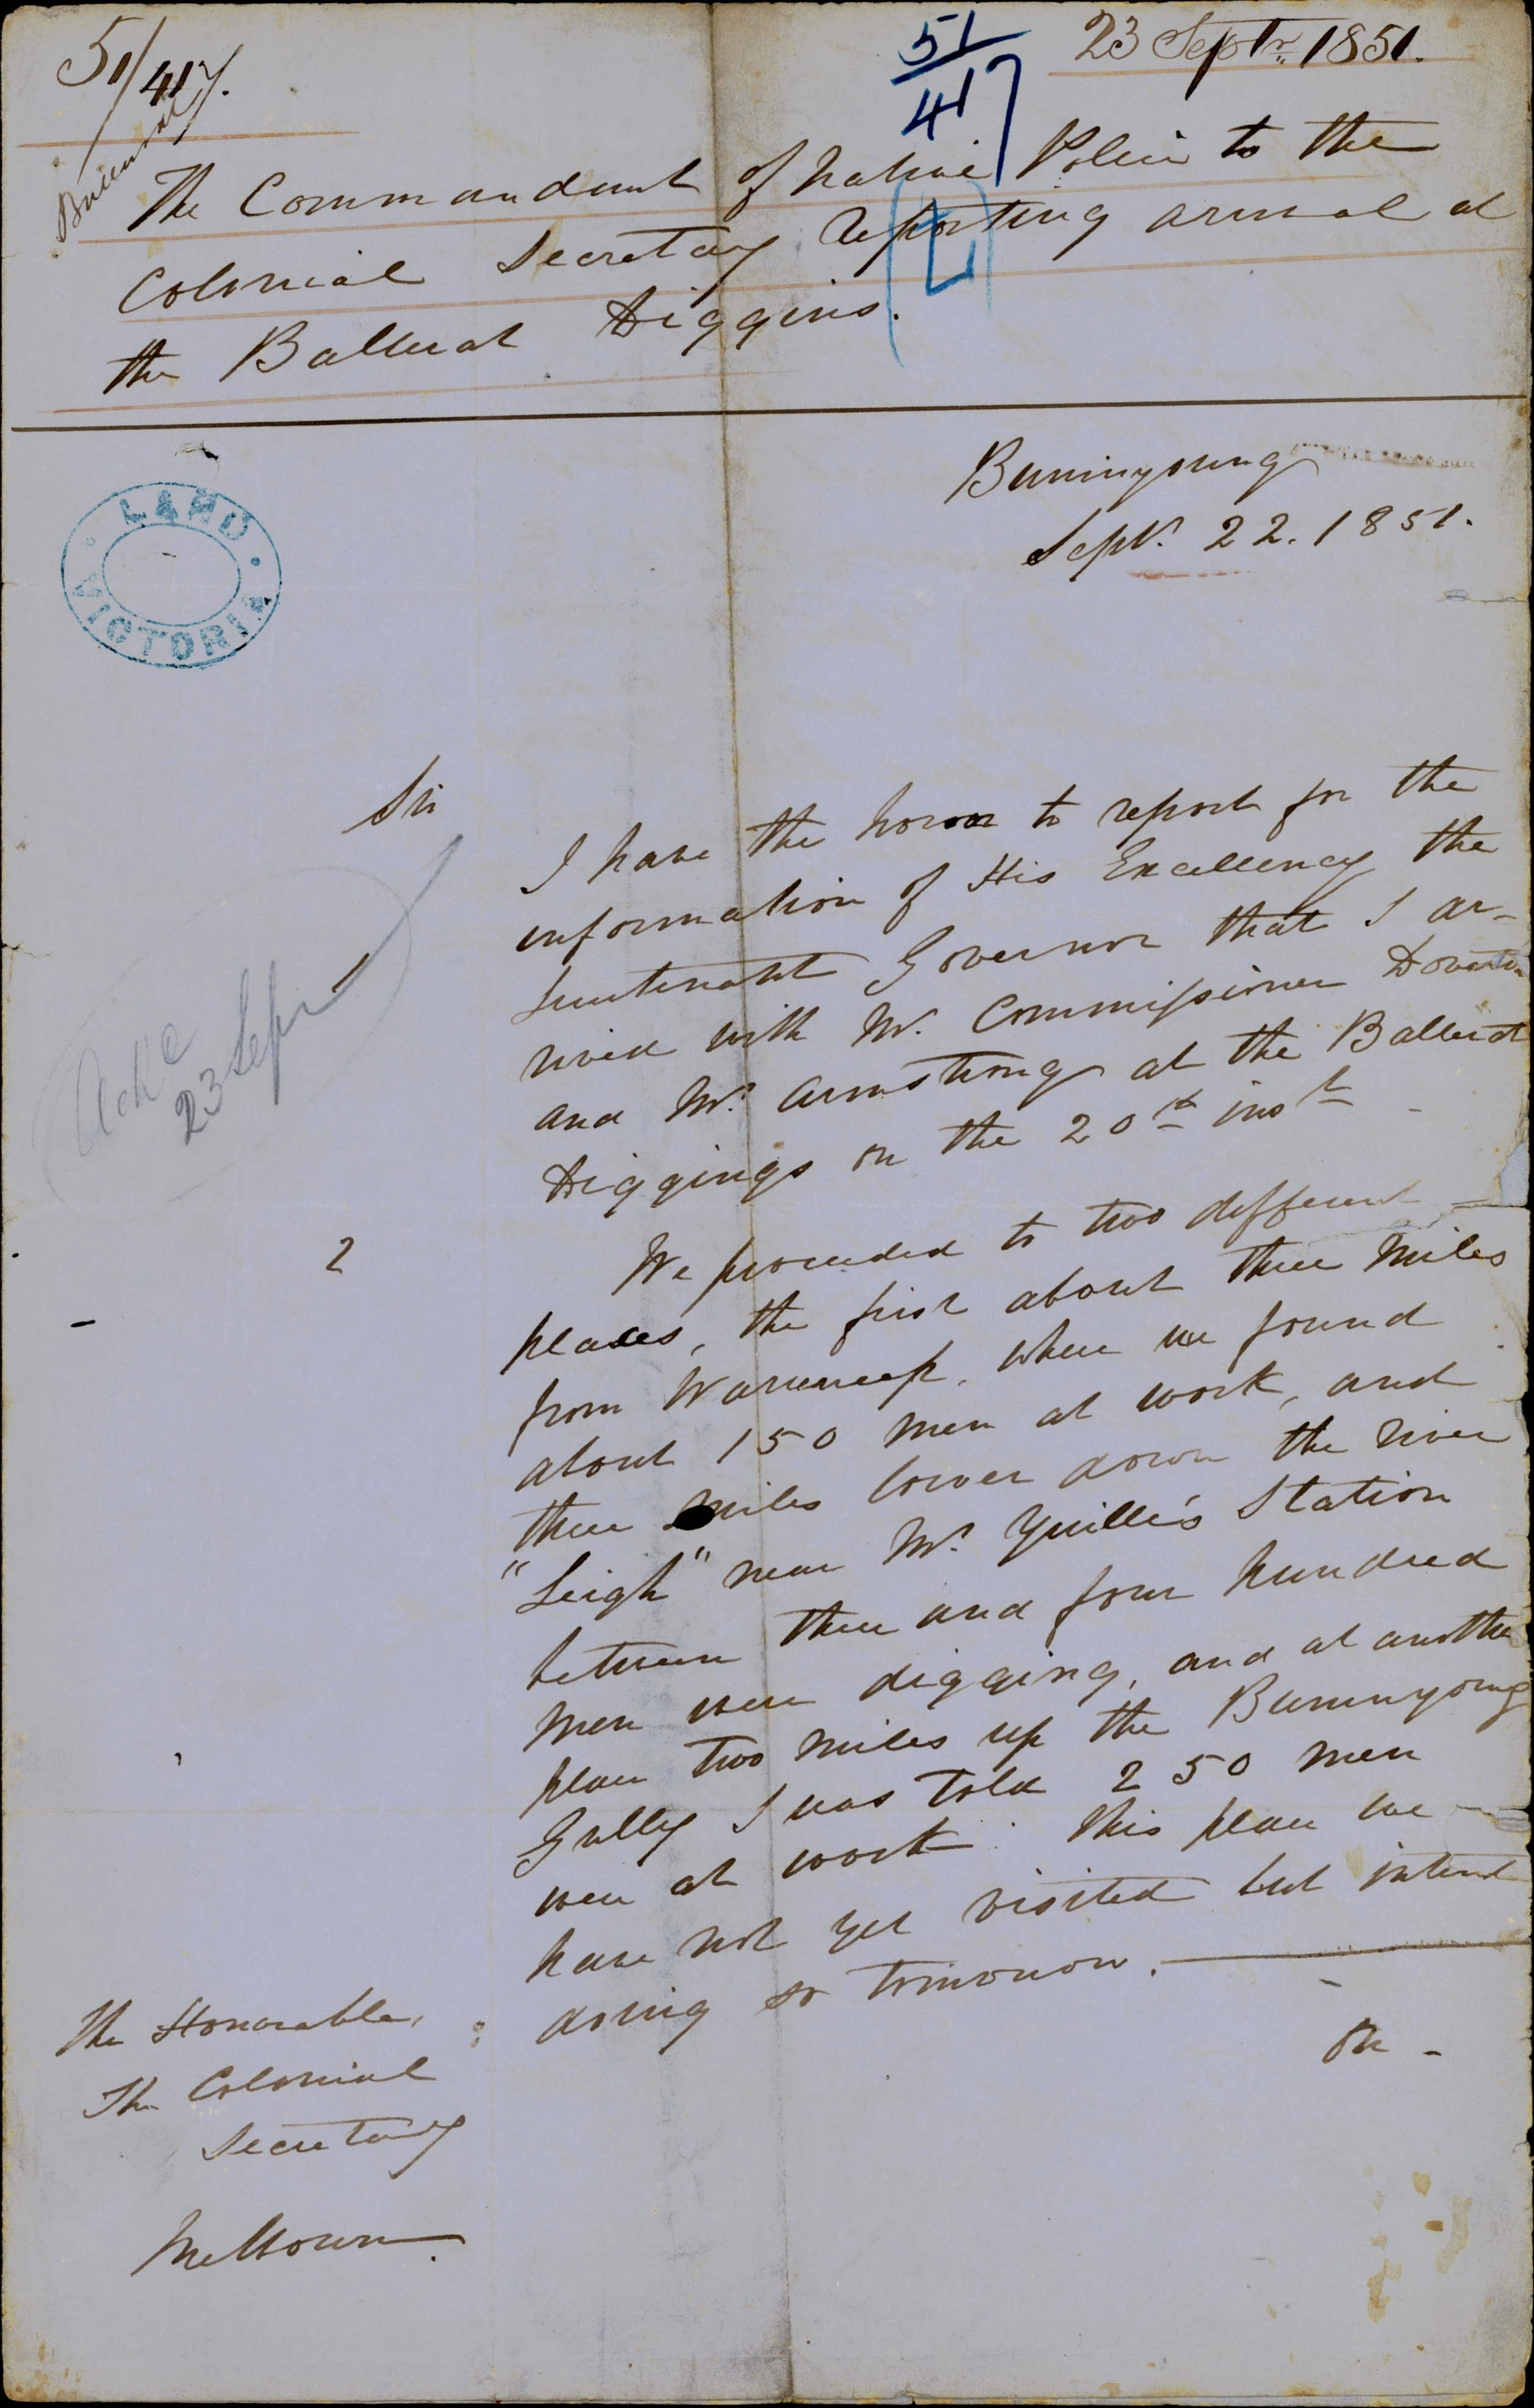 handwritten sheet of paper